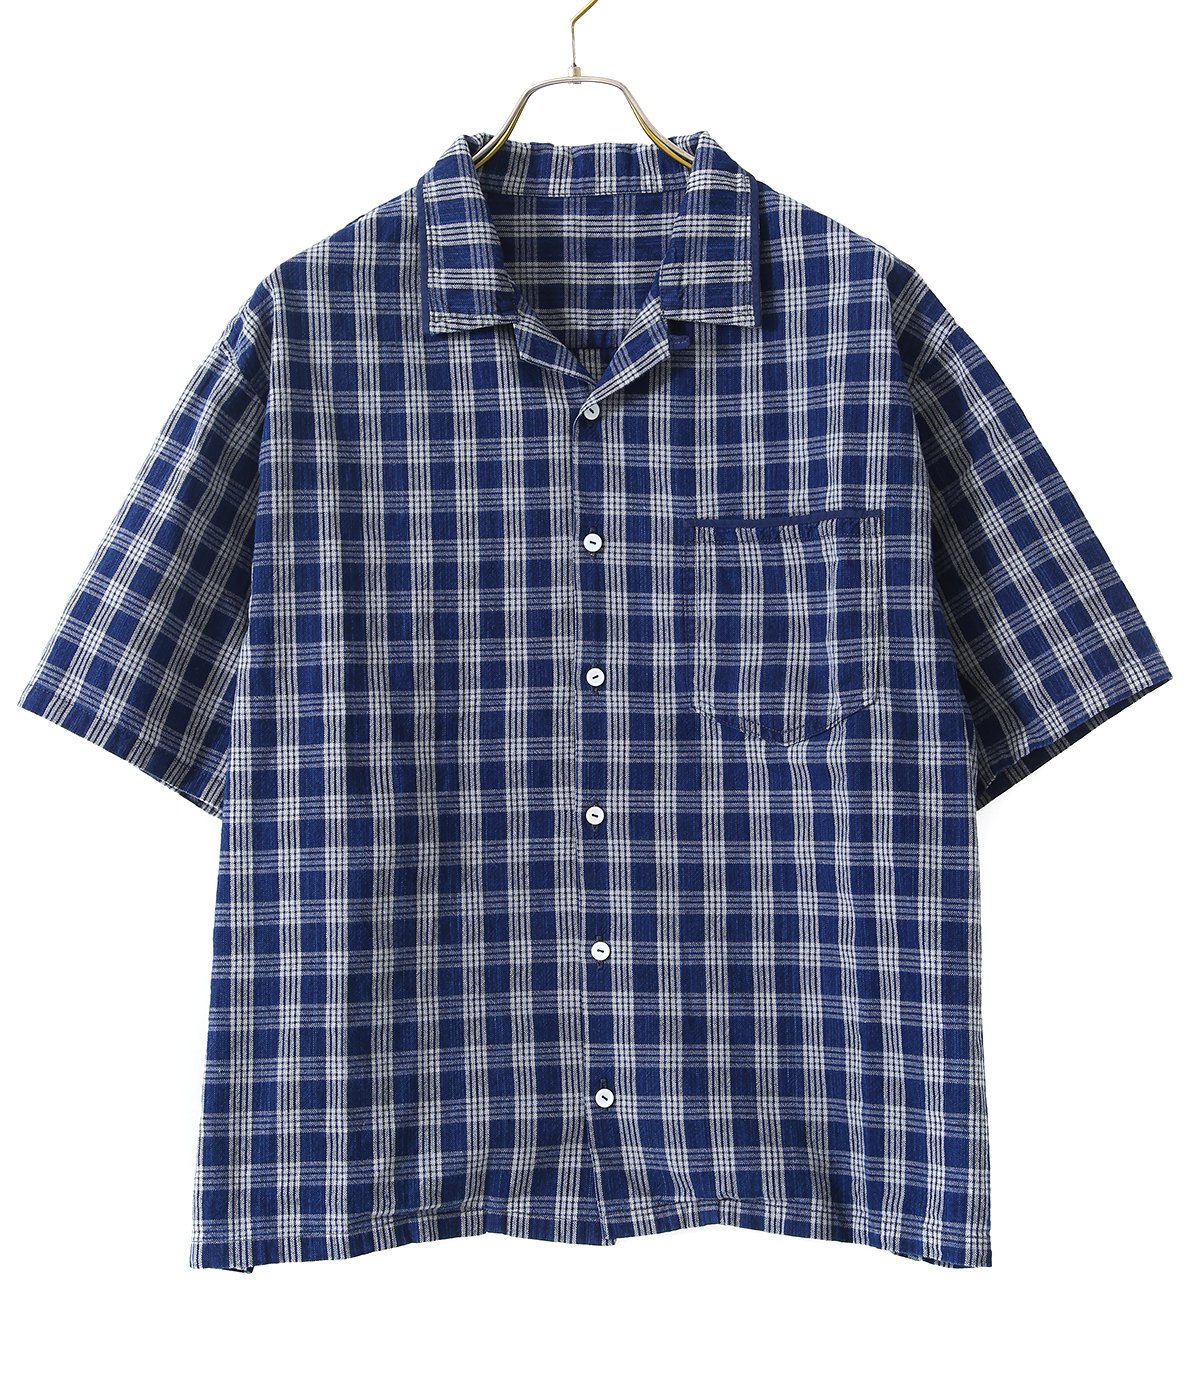 PALAKA SHORT SLEEVE SHIRT